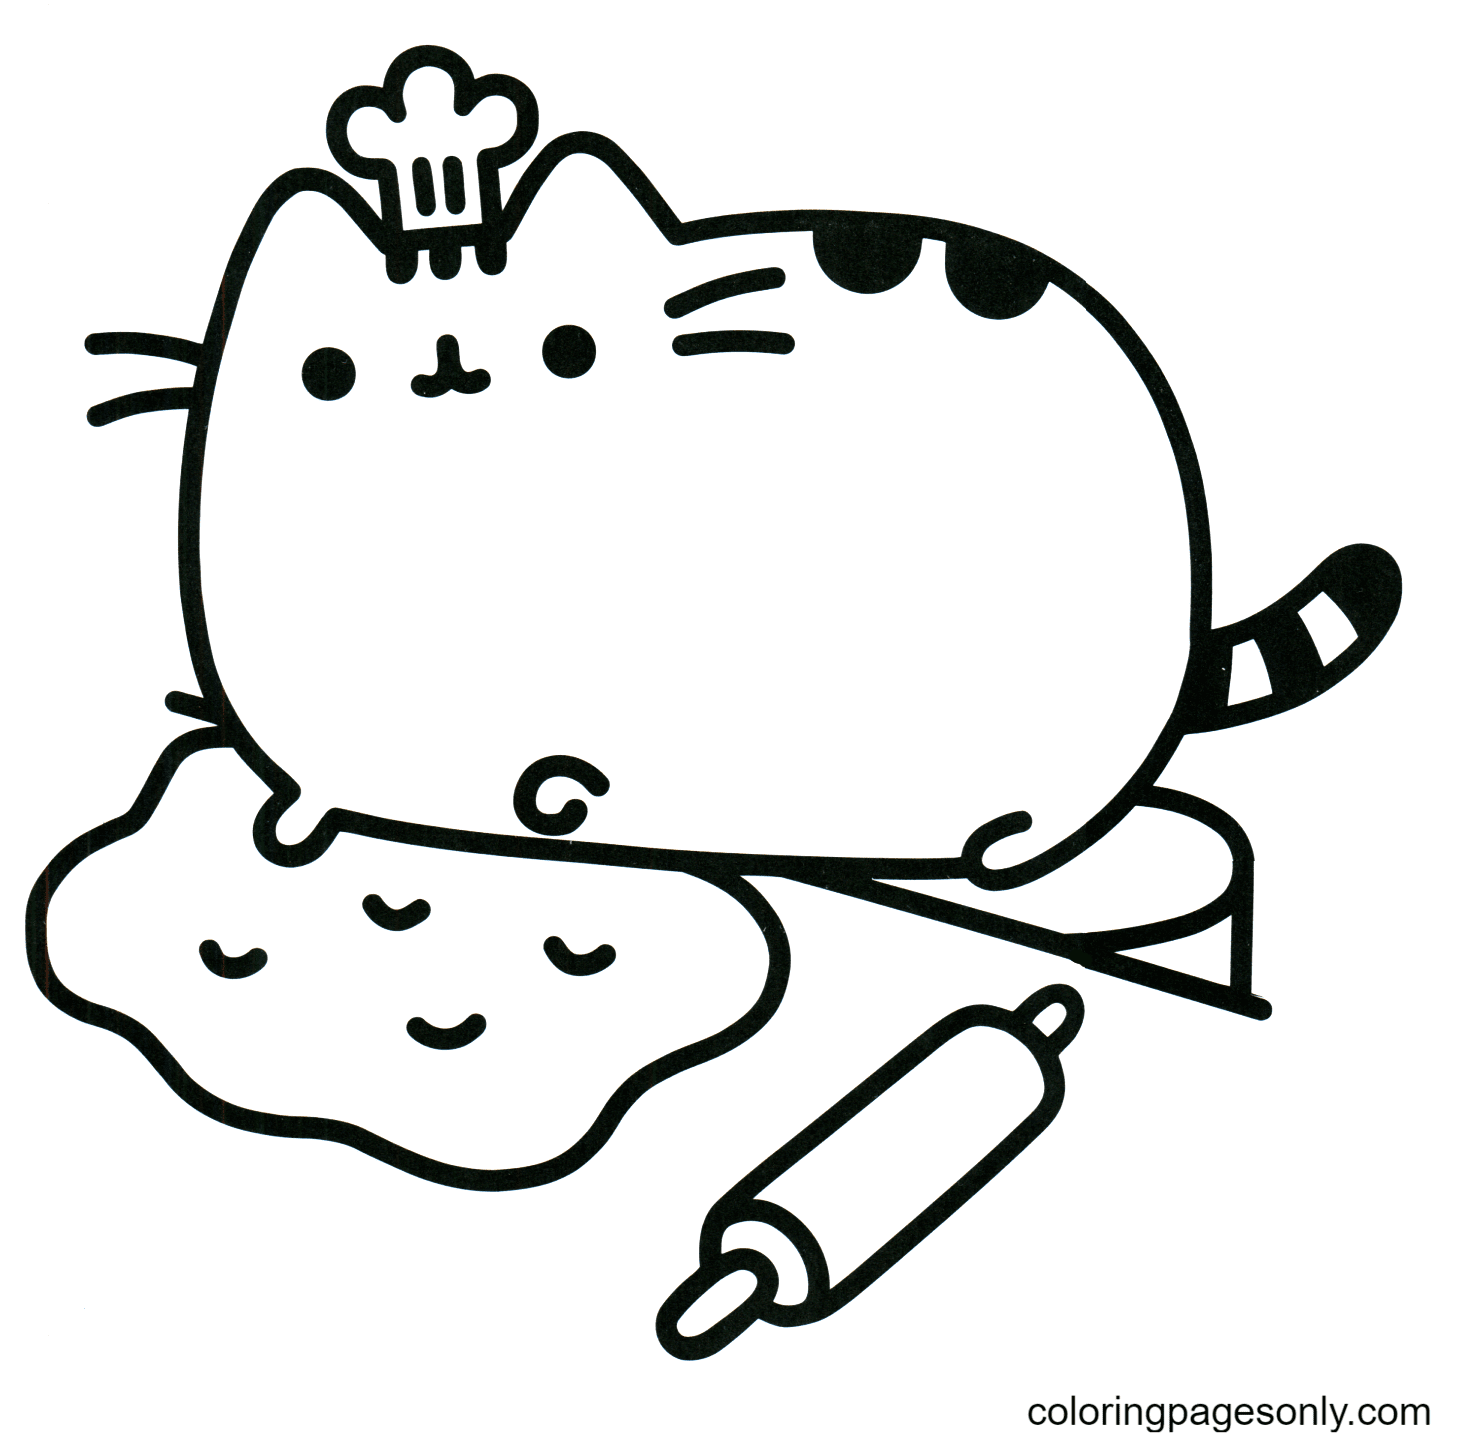 Pusheen the Cat Chef Coloring Page